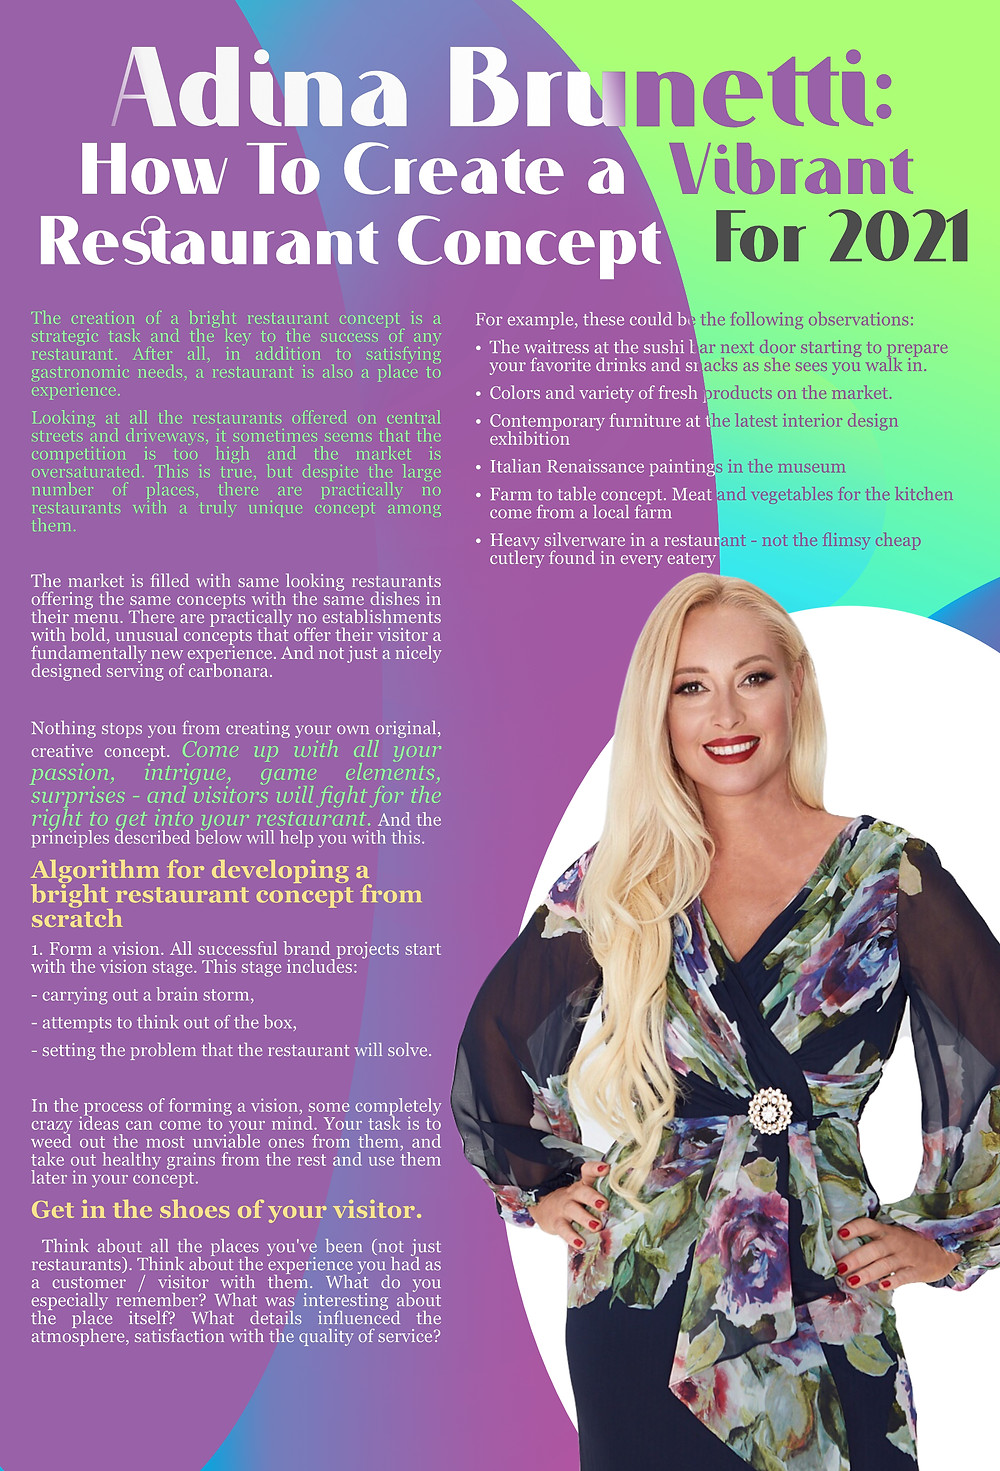 Adina Brunetti: Adina Brunetti: How To Create a Vibrant Restaurant Concept for 2021